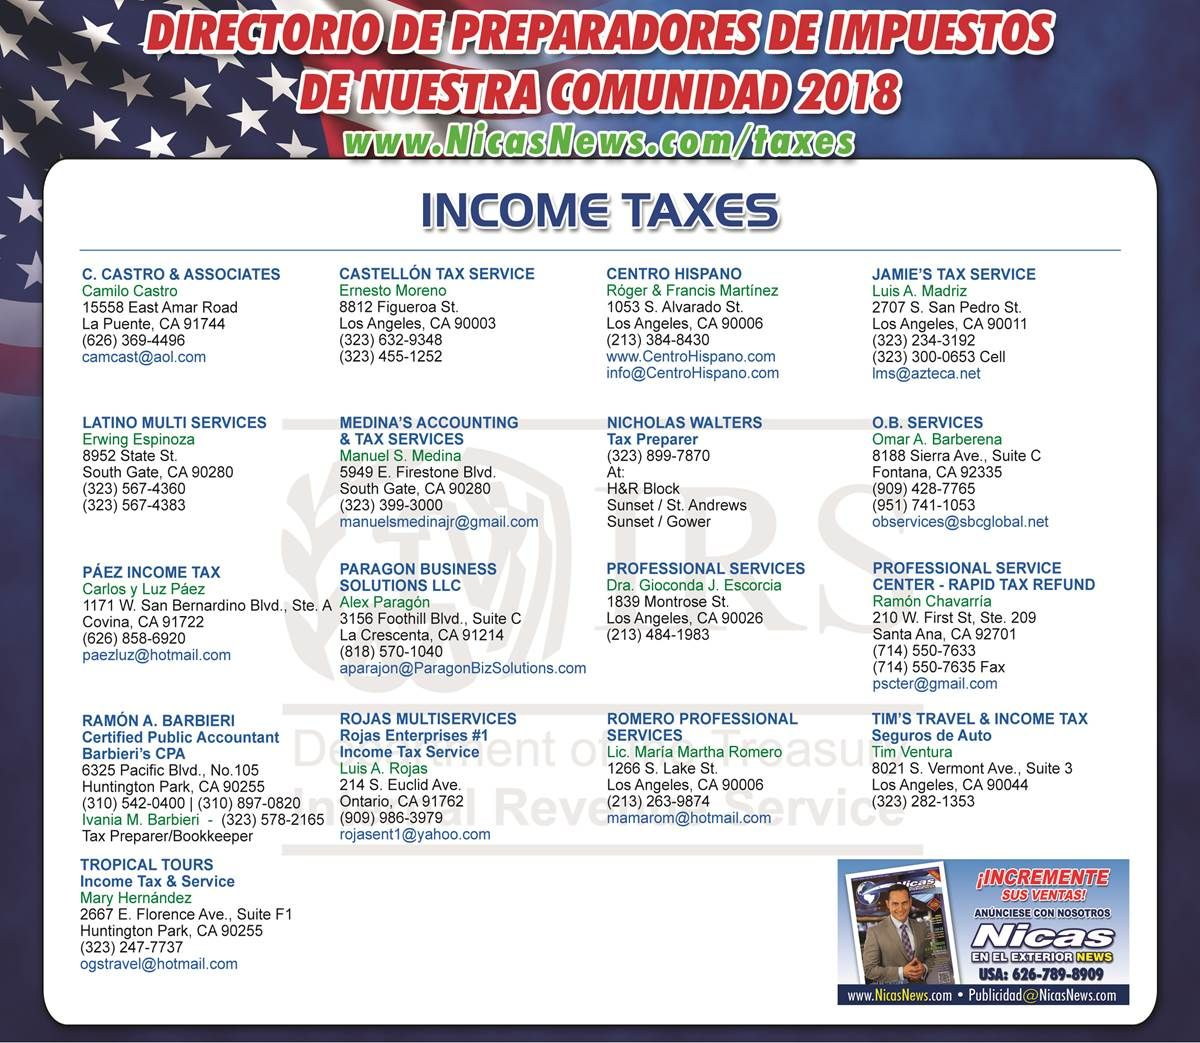 Preparadores De Impuestos Income Tax